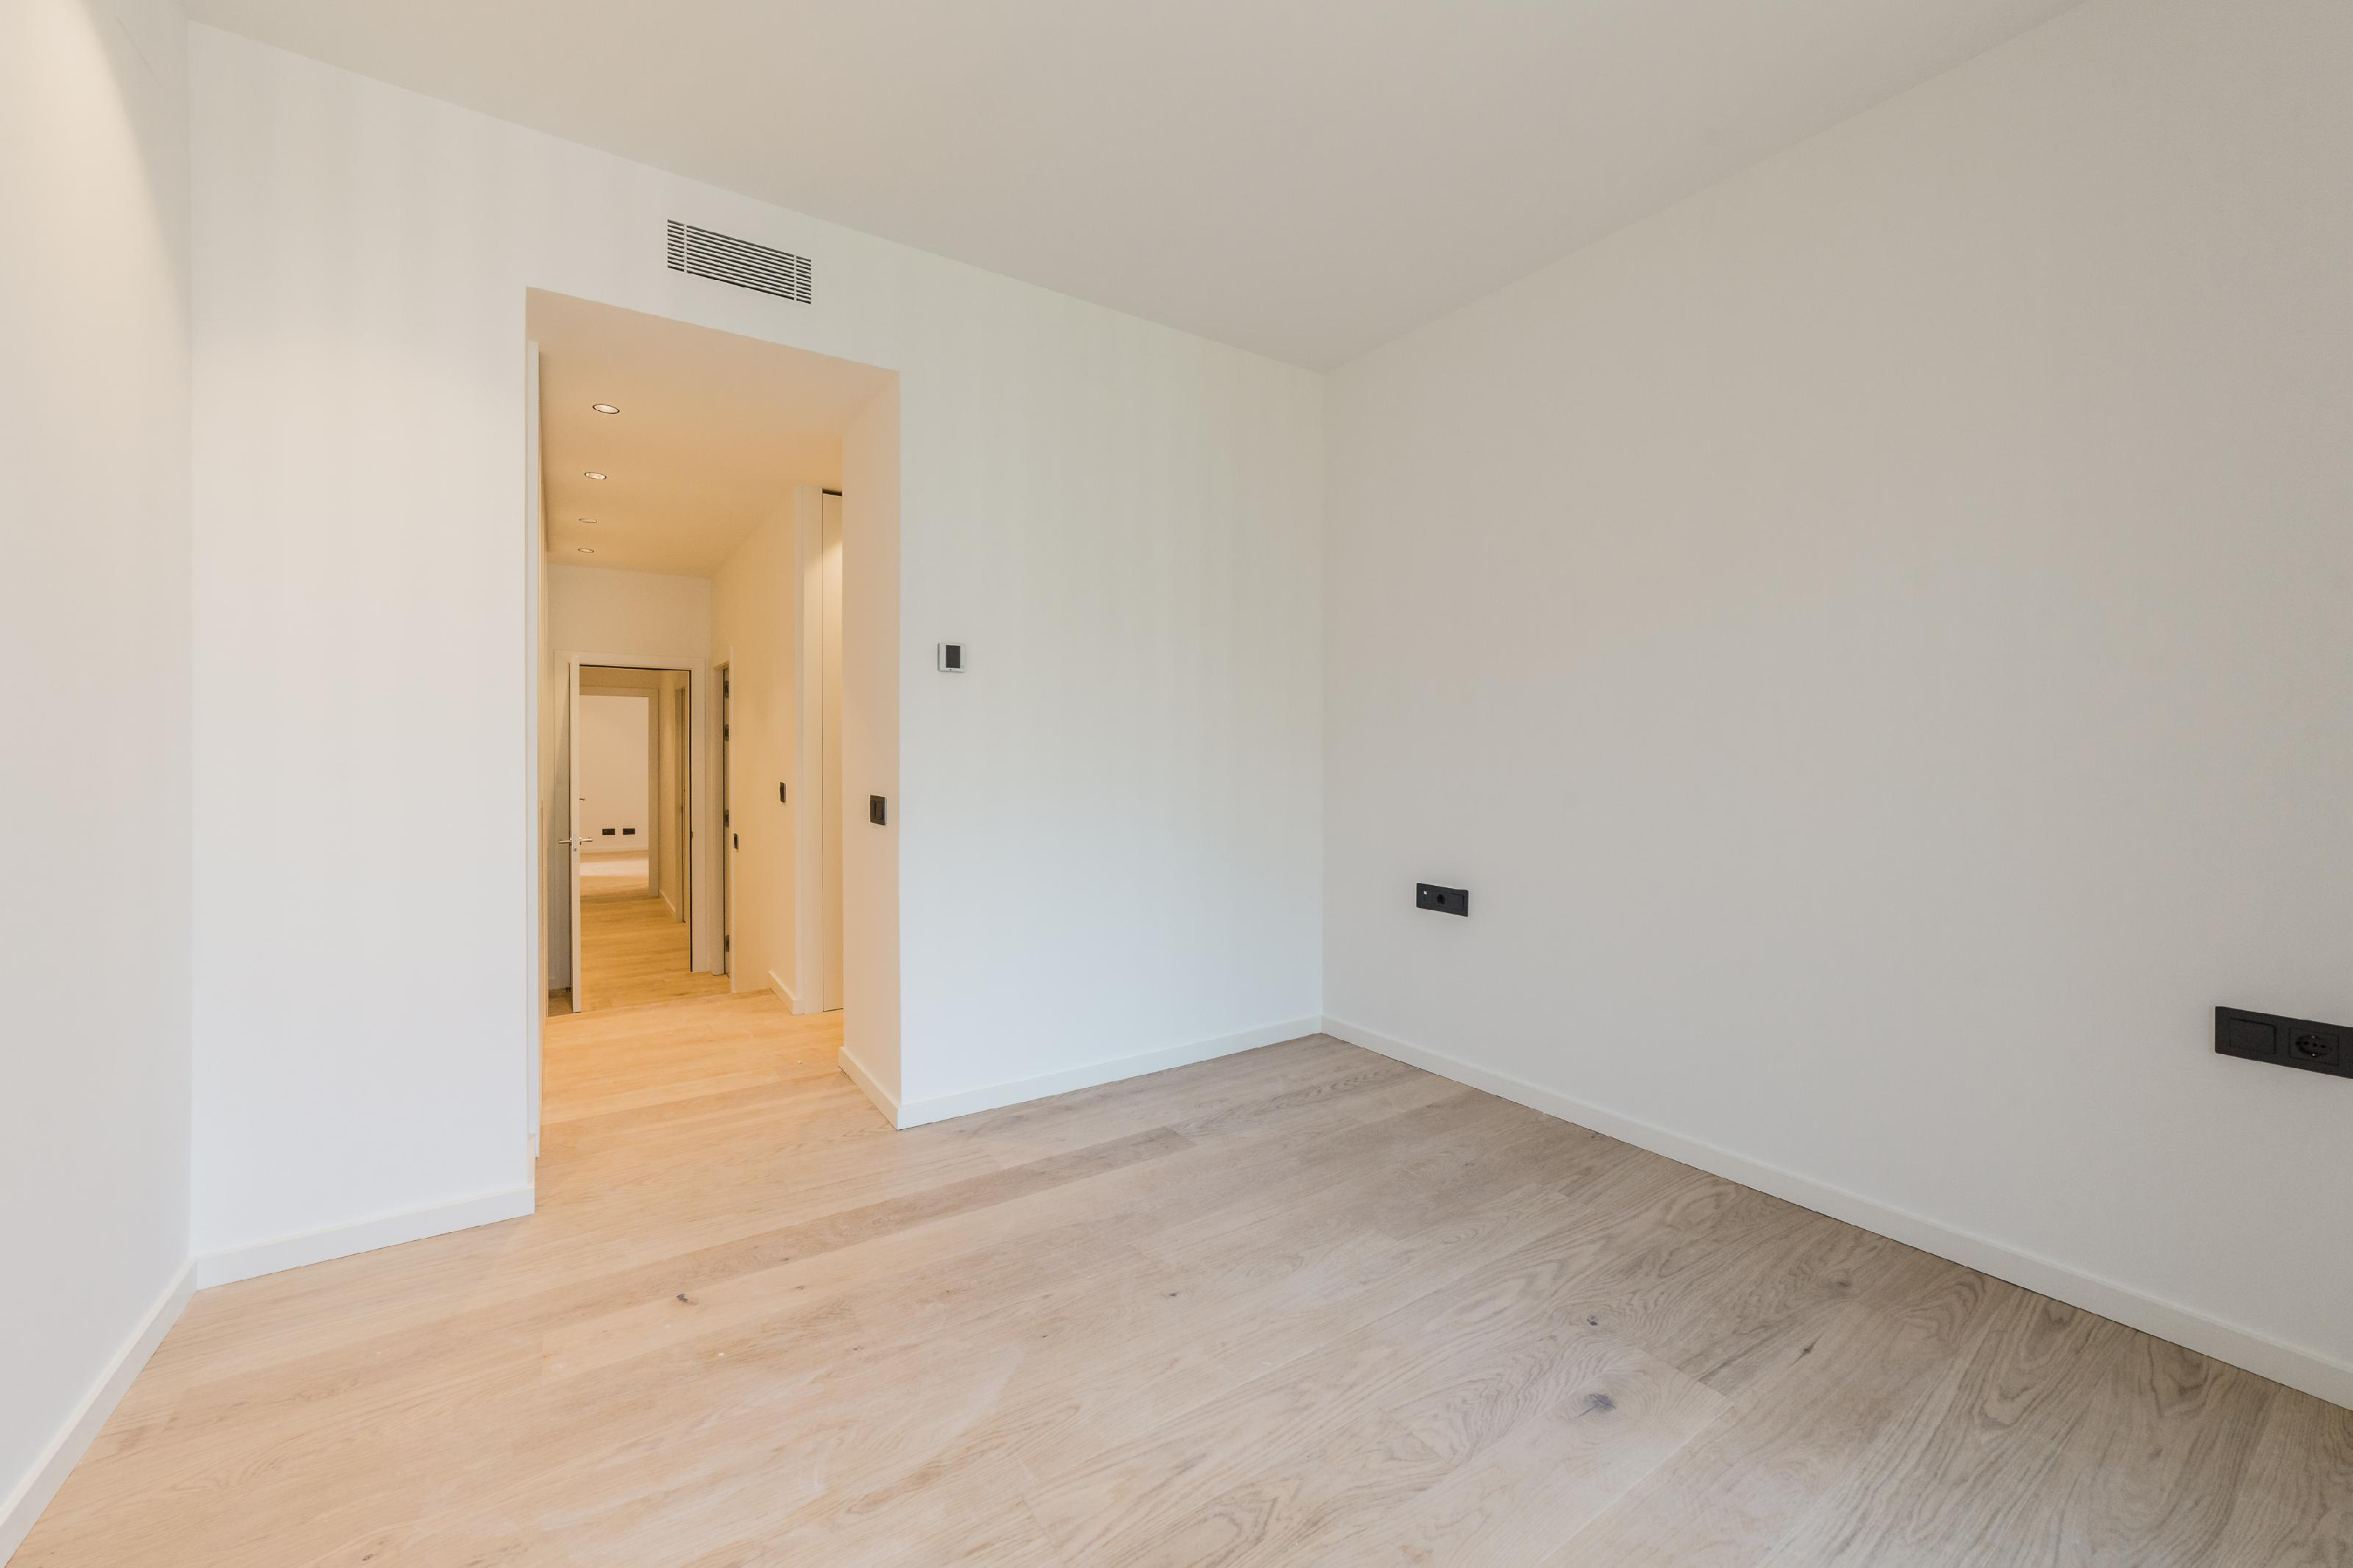 182474 Apartment for sale in Eixample, Old Left Eixample 17